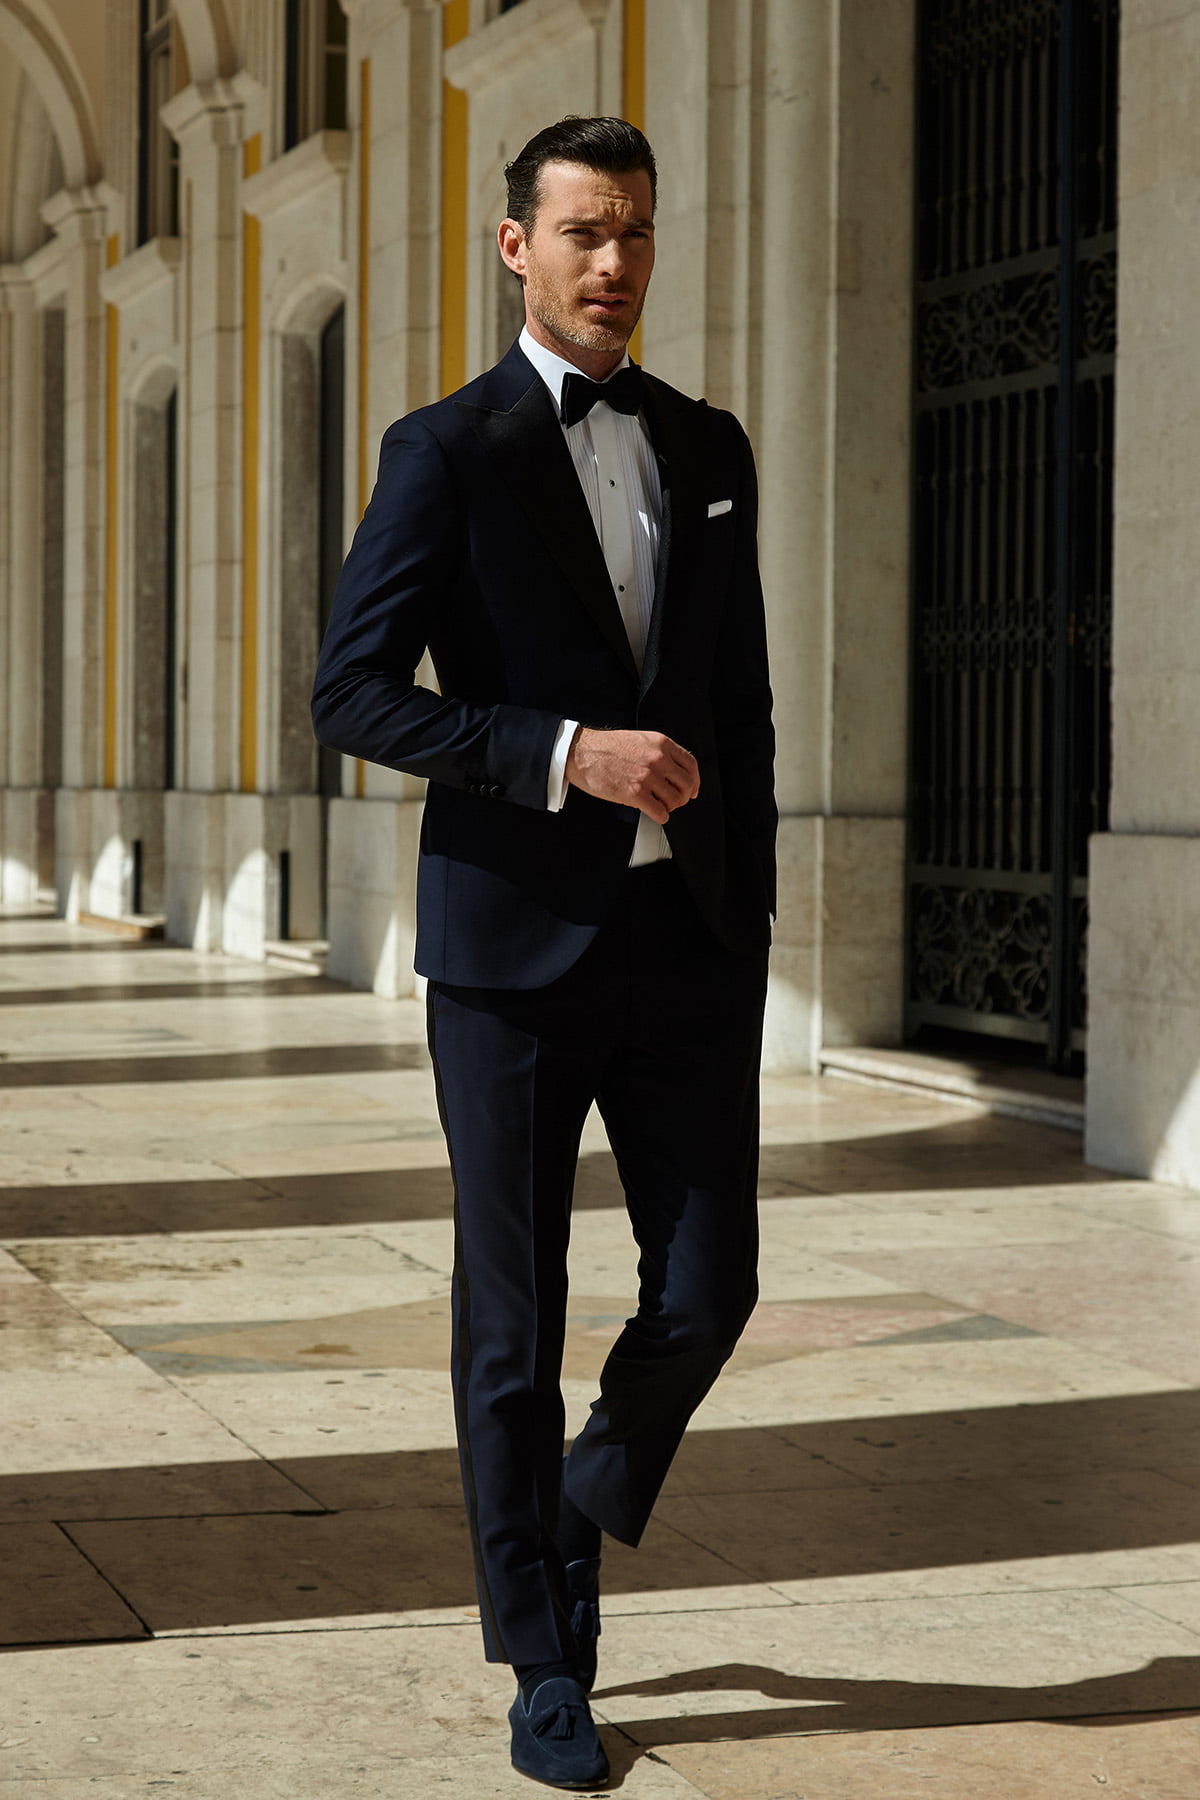 GROOM! - HOW TO LOOK YOUR BEST ON YOUR WEDDING DAY 1